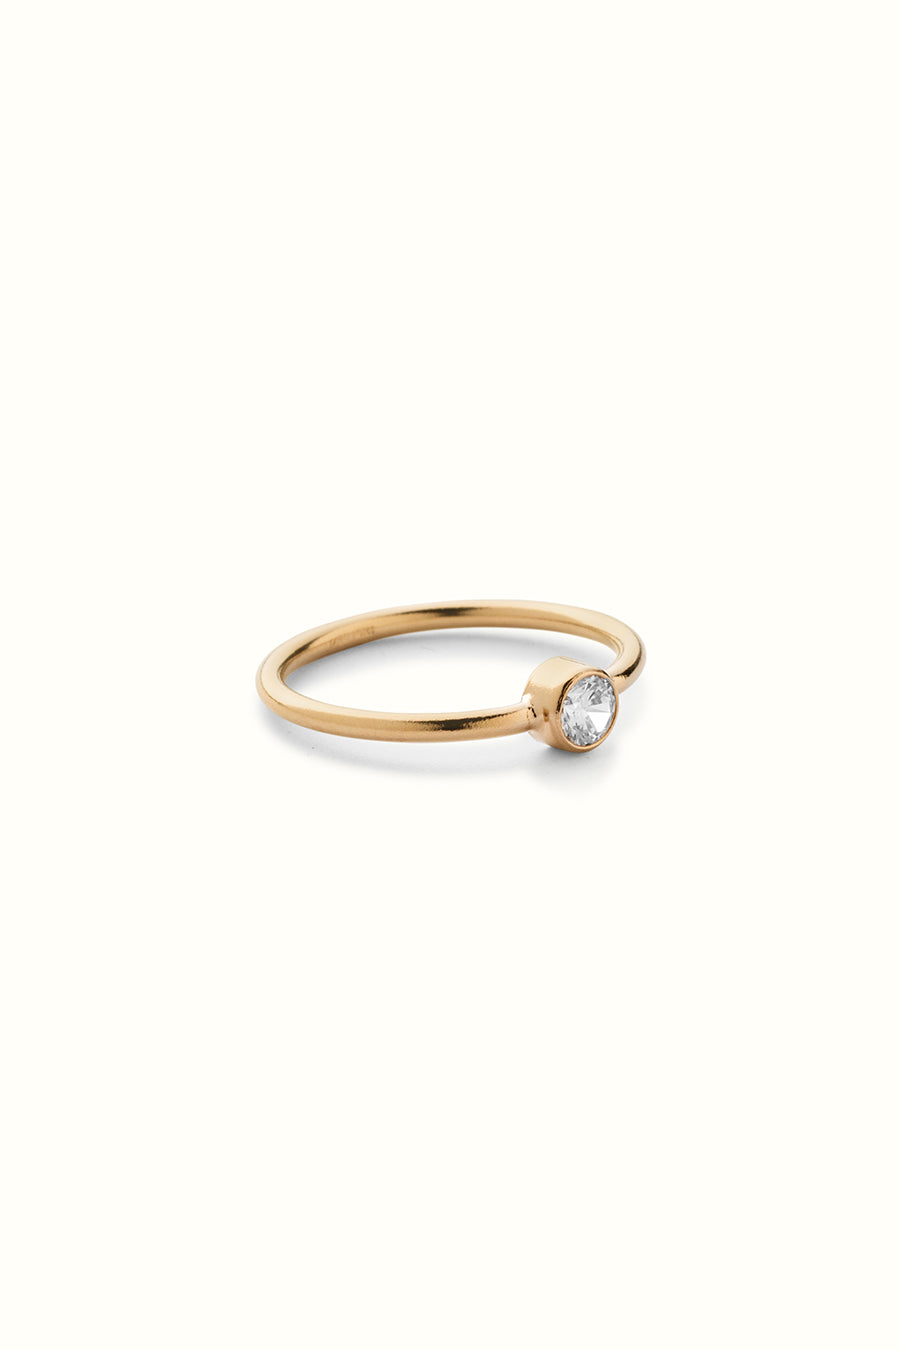 a gold filled finger ring with a set zirconia stone on a white background